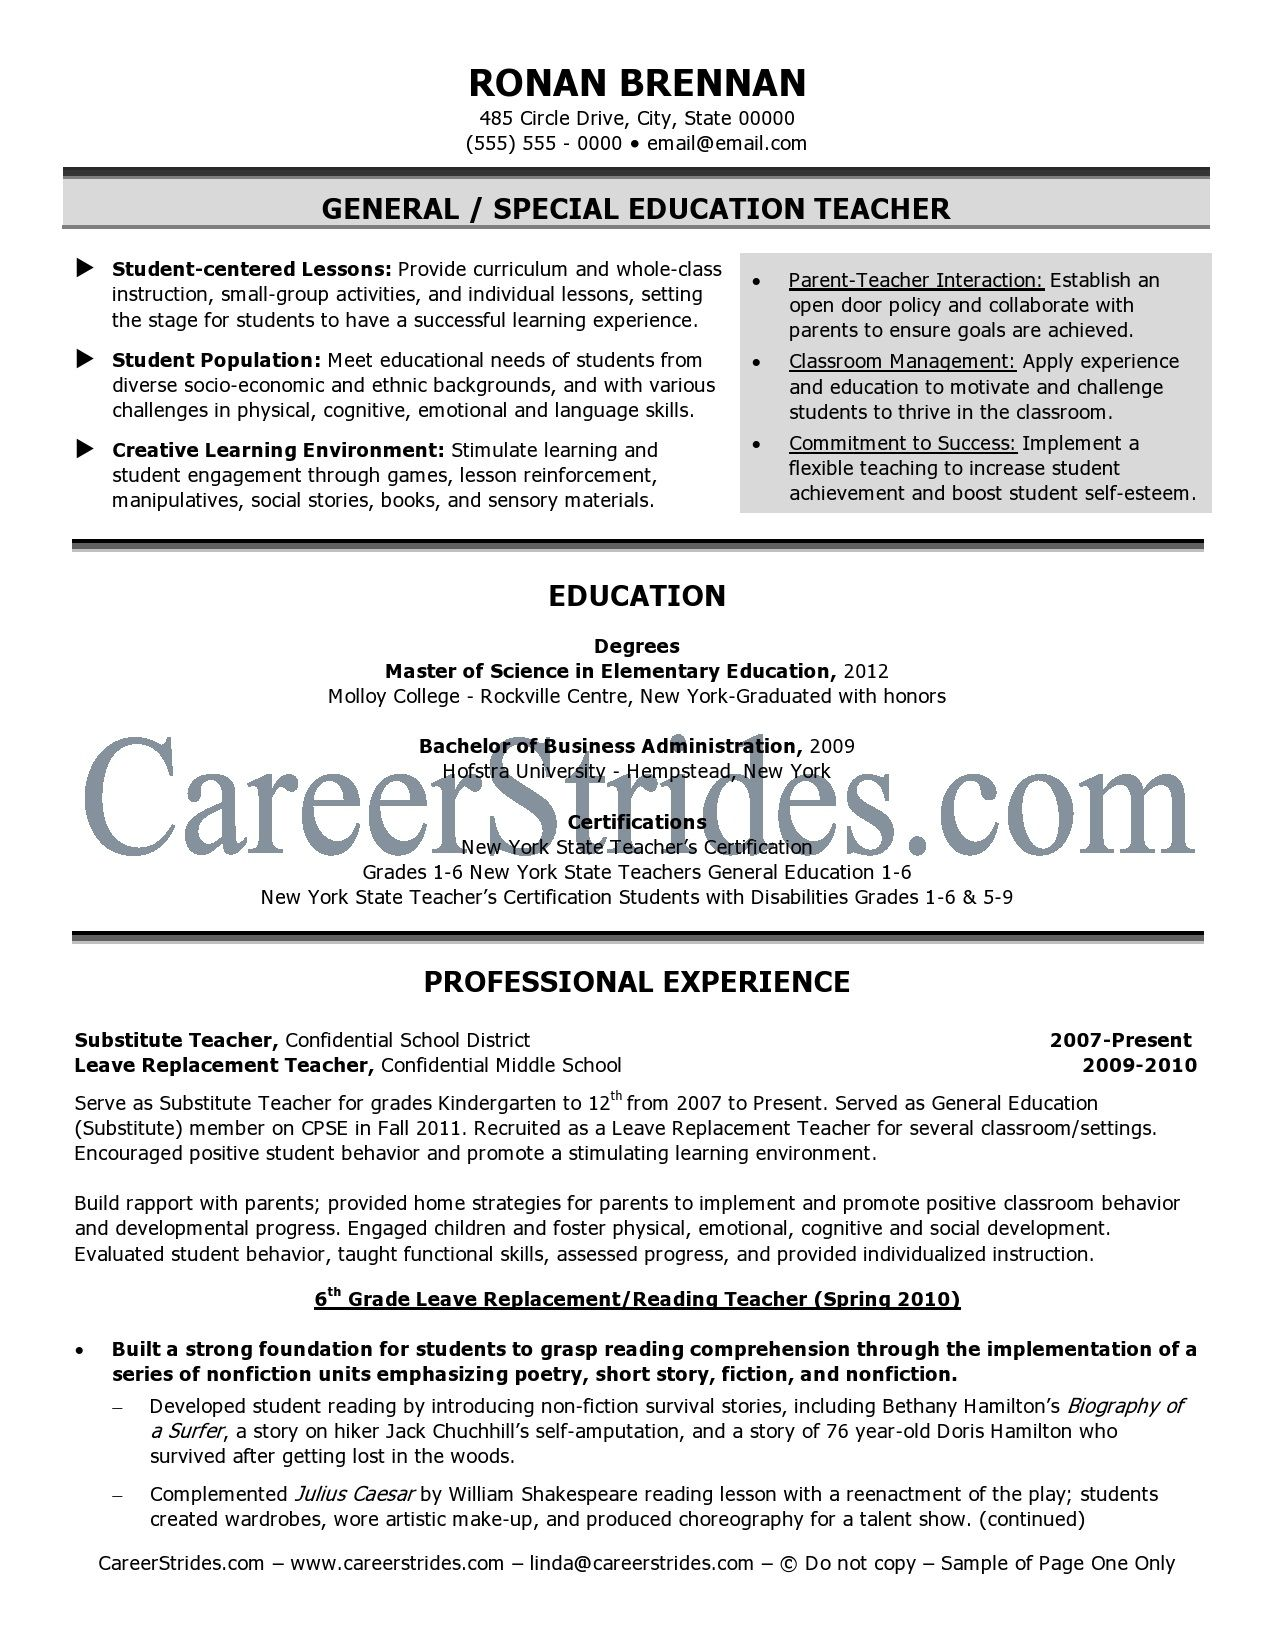 resume Substitute Teacher Description Resume elementary teacher resume examples httpwww resumecareer info substitute sample resumes for teachers